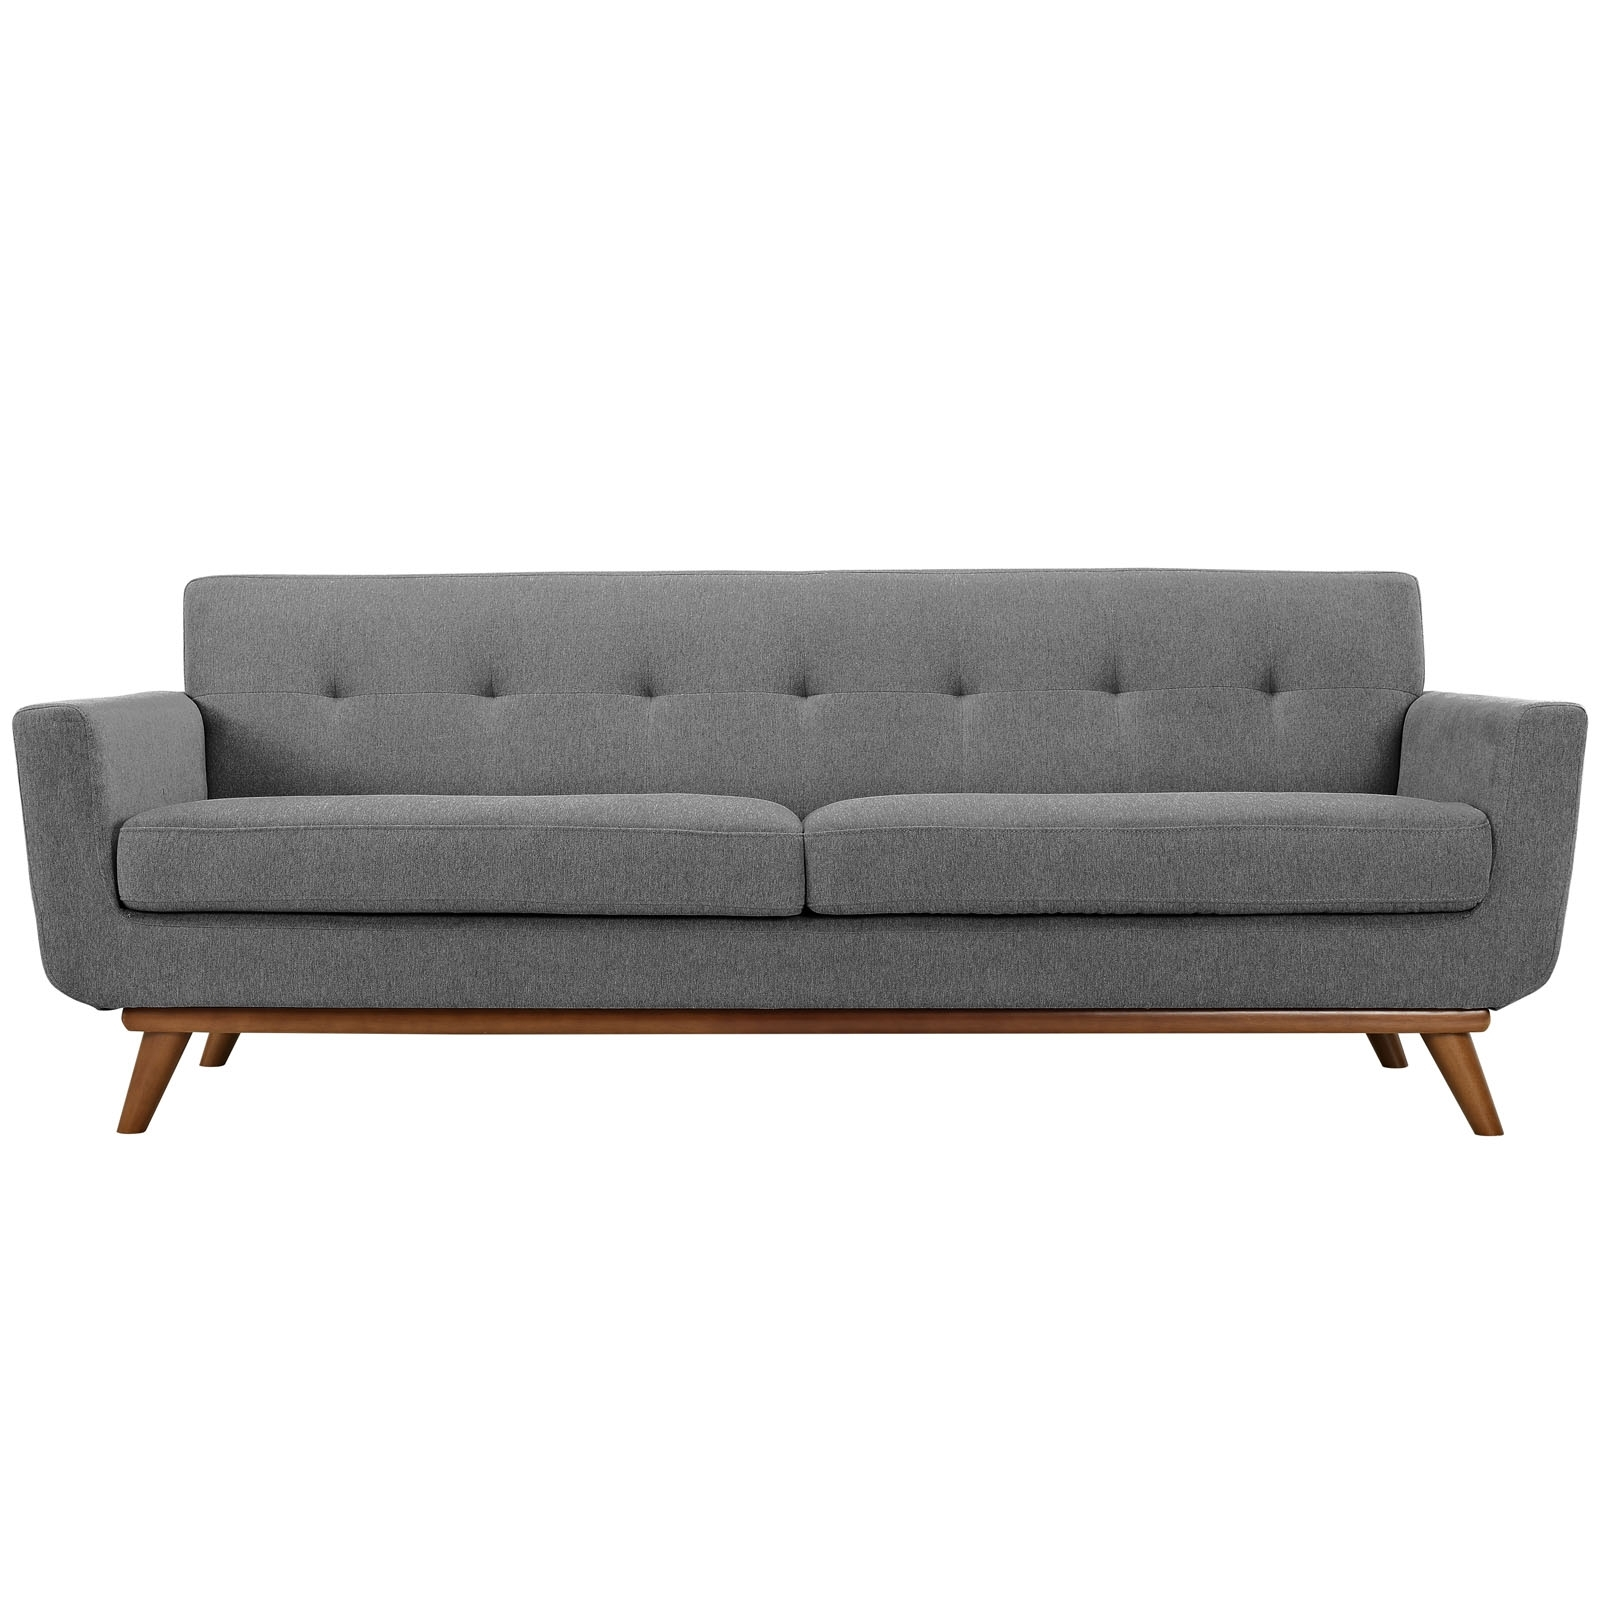 Well Known Sectional Sofas Under 700 Inside Sofas & Couches – Walmart (View 19 of 20)